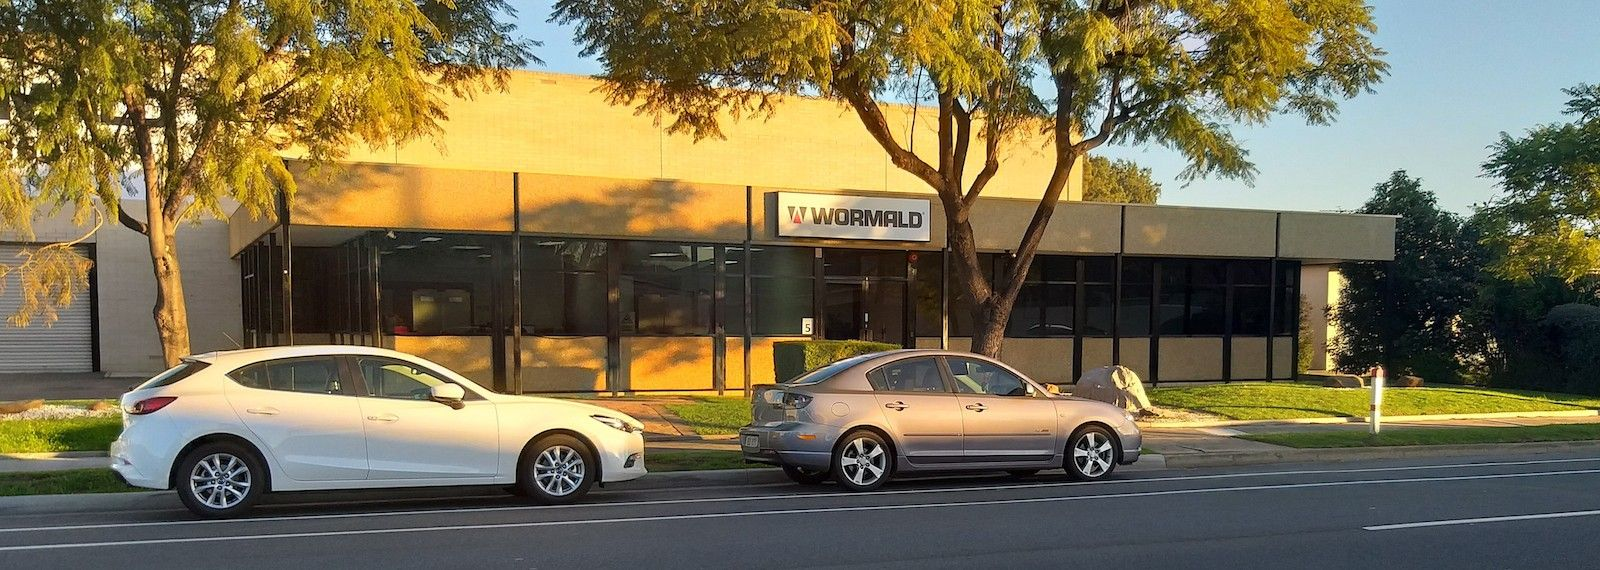 New Adelaide office brings Wormald team together